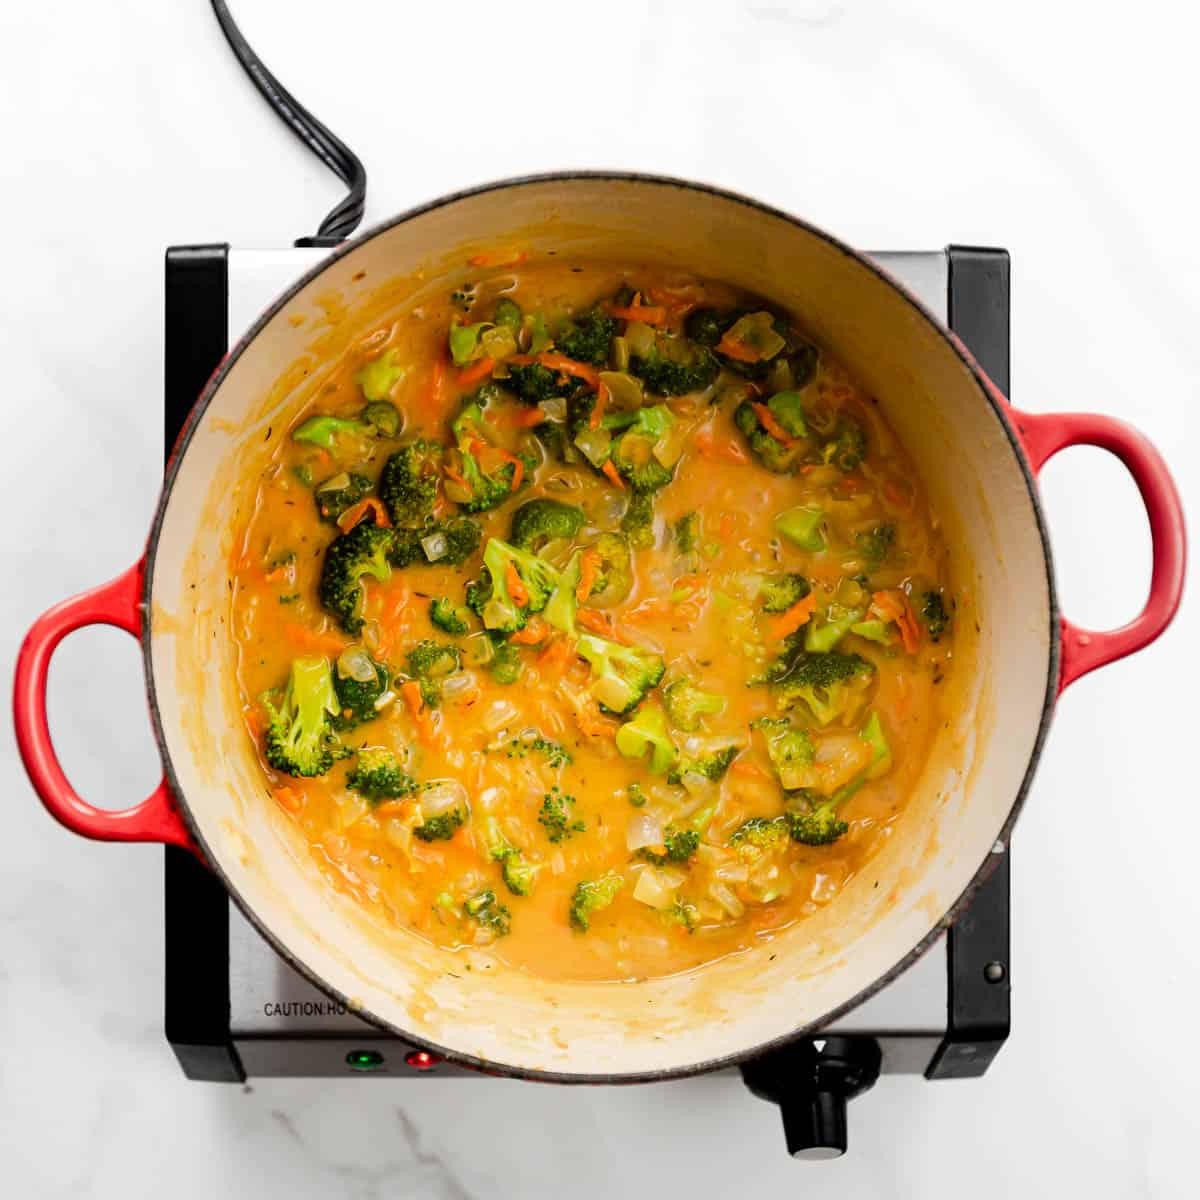 Add low sodium chicken stock into the pot. Bring the mixture to a boil then reduce the heat to medium-low. Simmer, uncovered for 8 minutes or until the broccoli is tender.